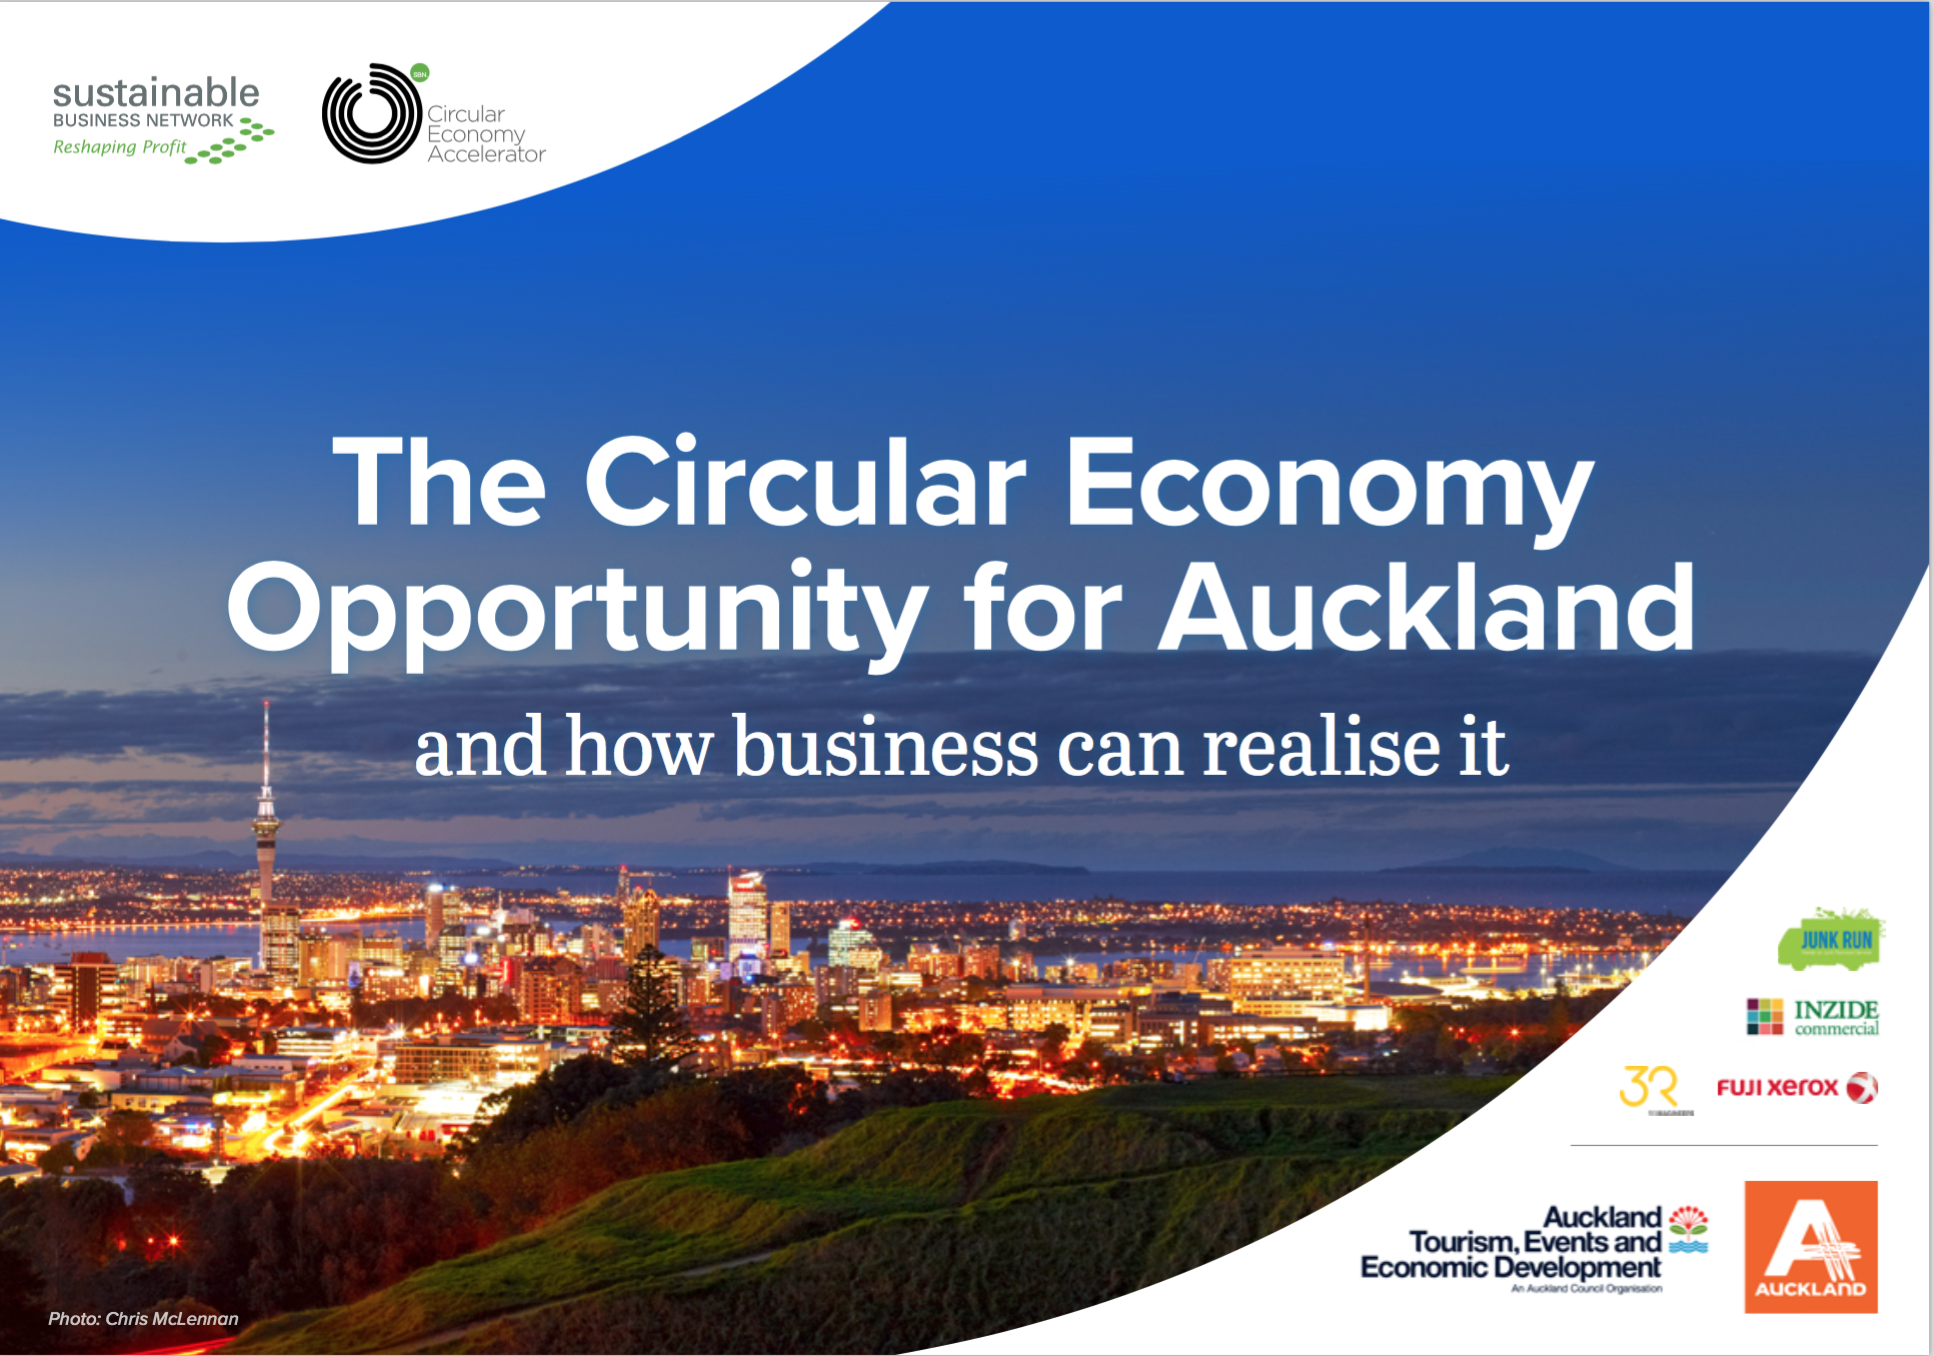 To realise this $8.8Billion opportunity for Auckland we need to make circular desirable for businesses and consumers alike. -